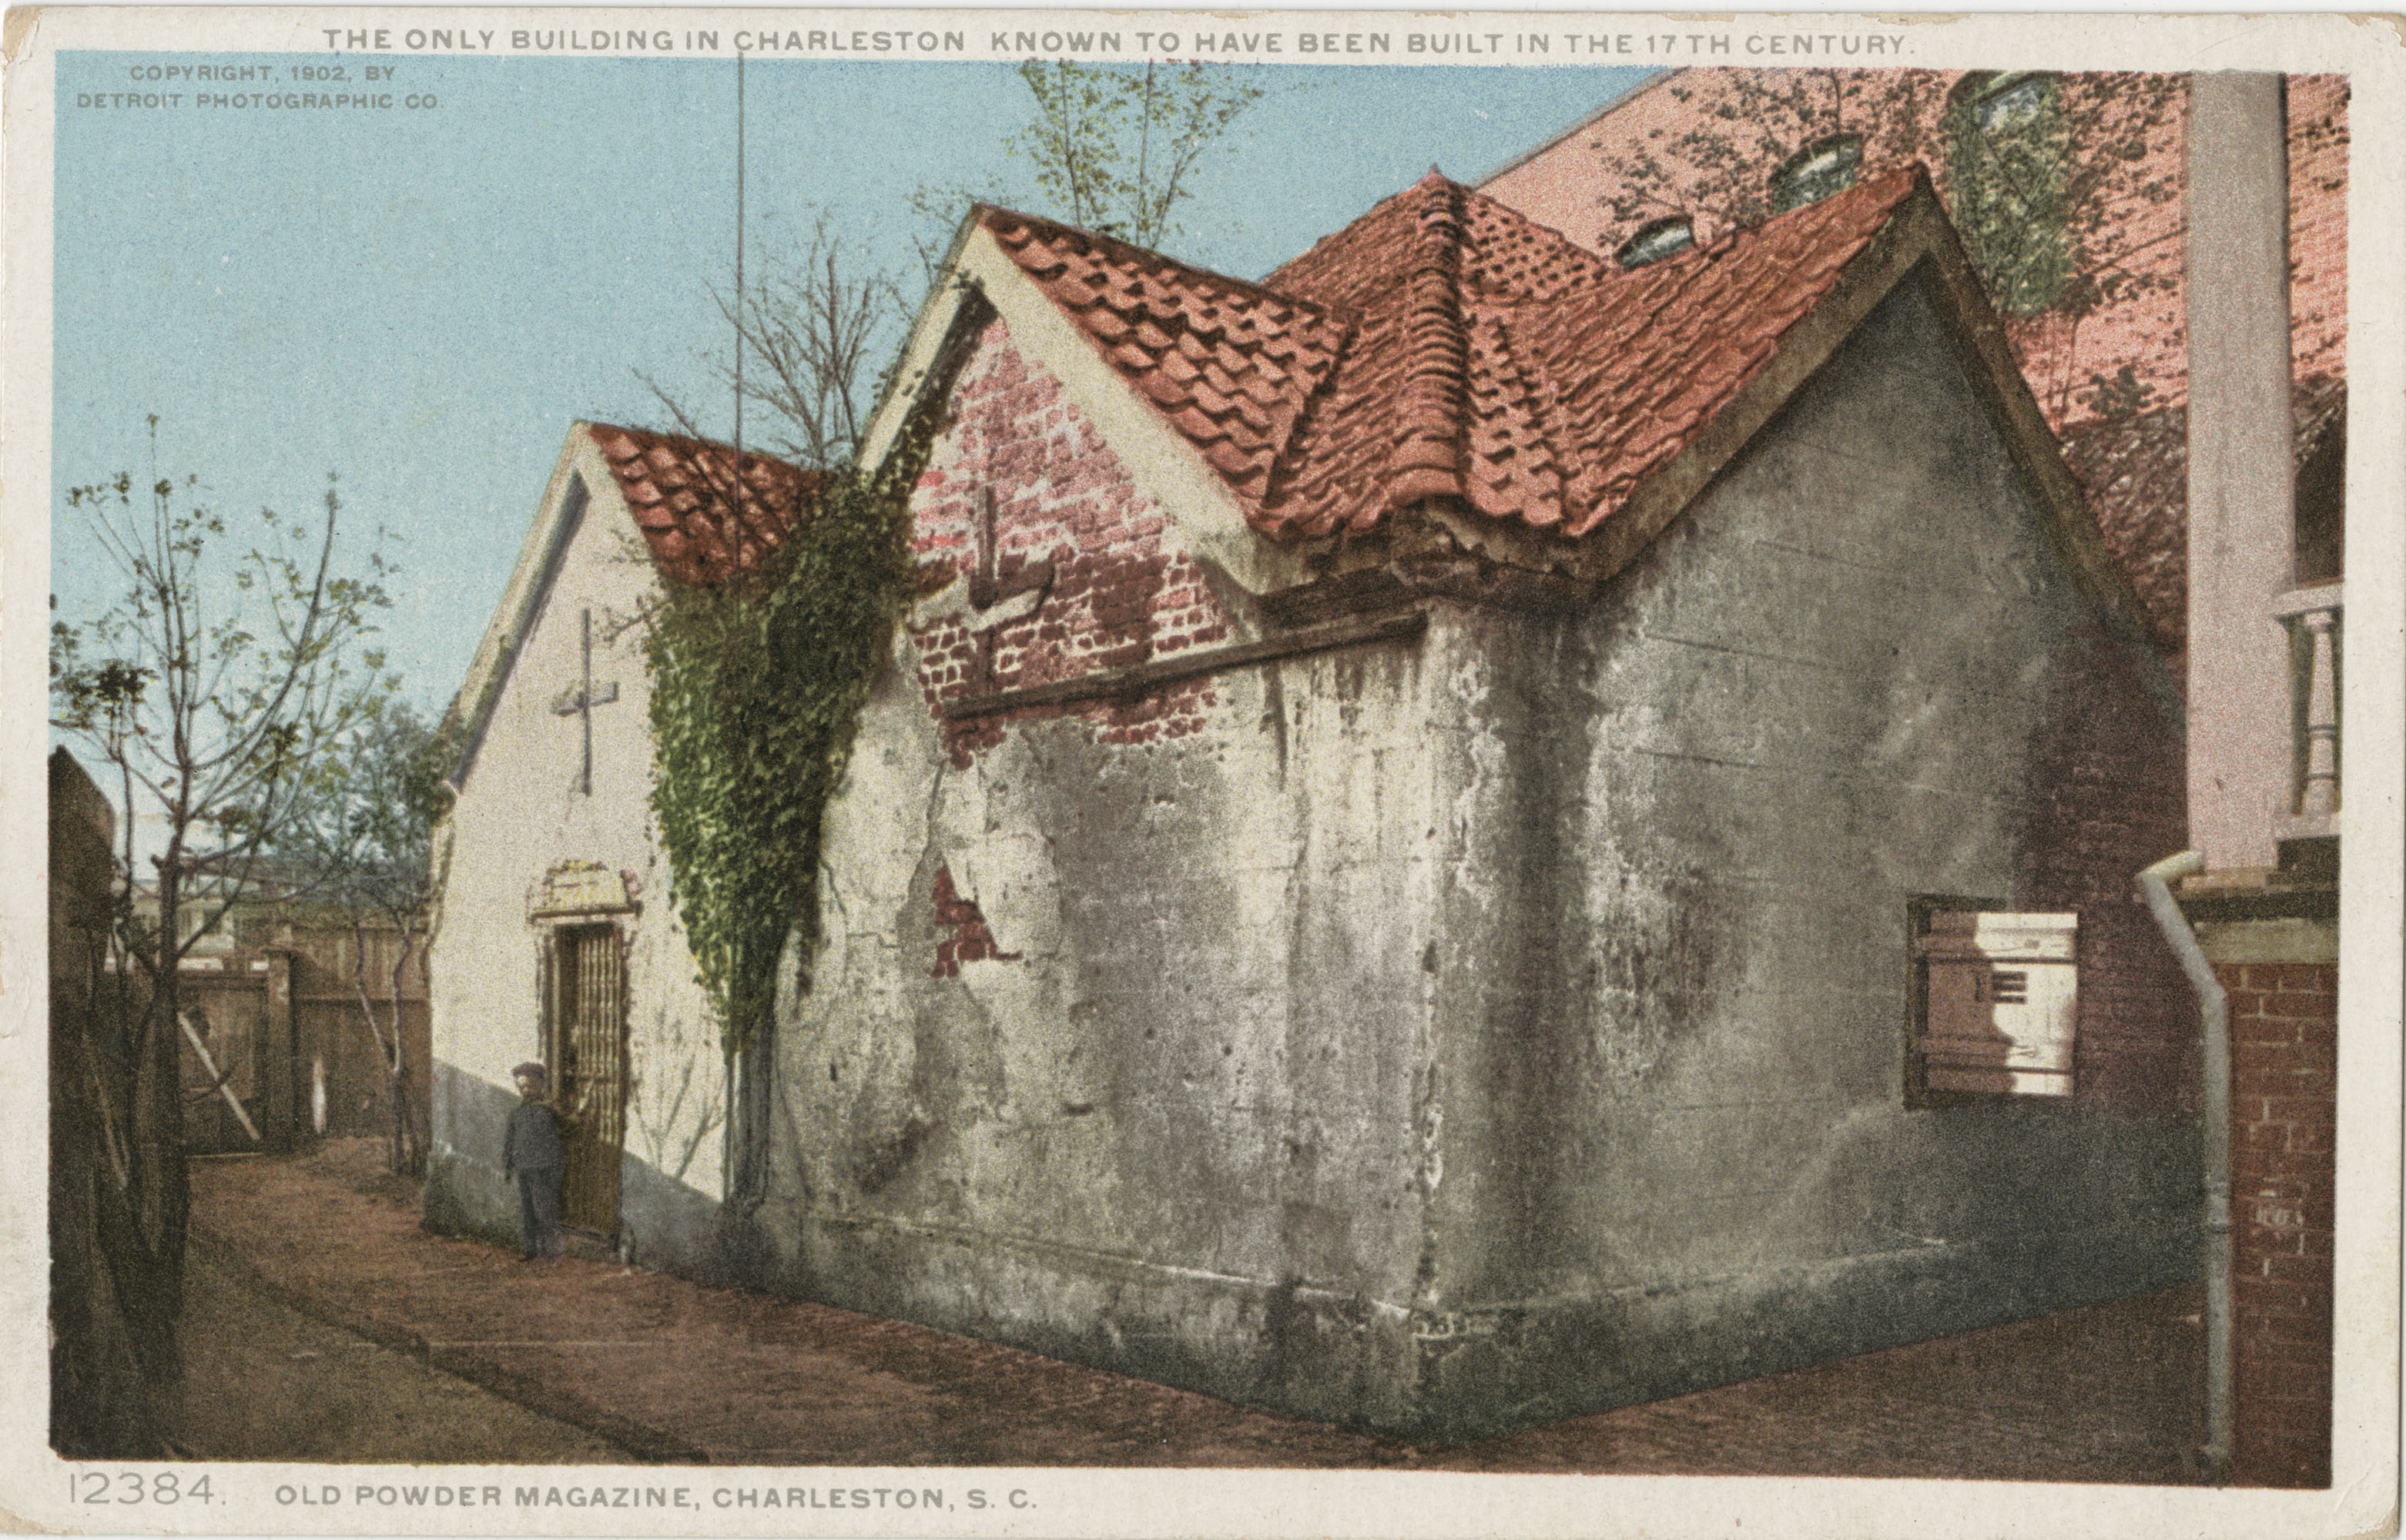 The only building in Charleston known to have been built in the 17th century. Old Powder Magazine, Charleston, S.C.